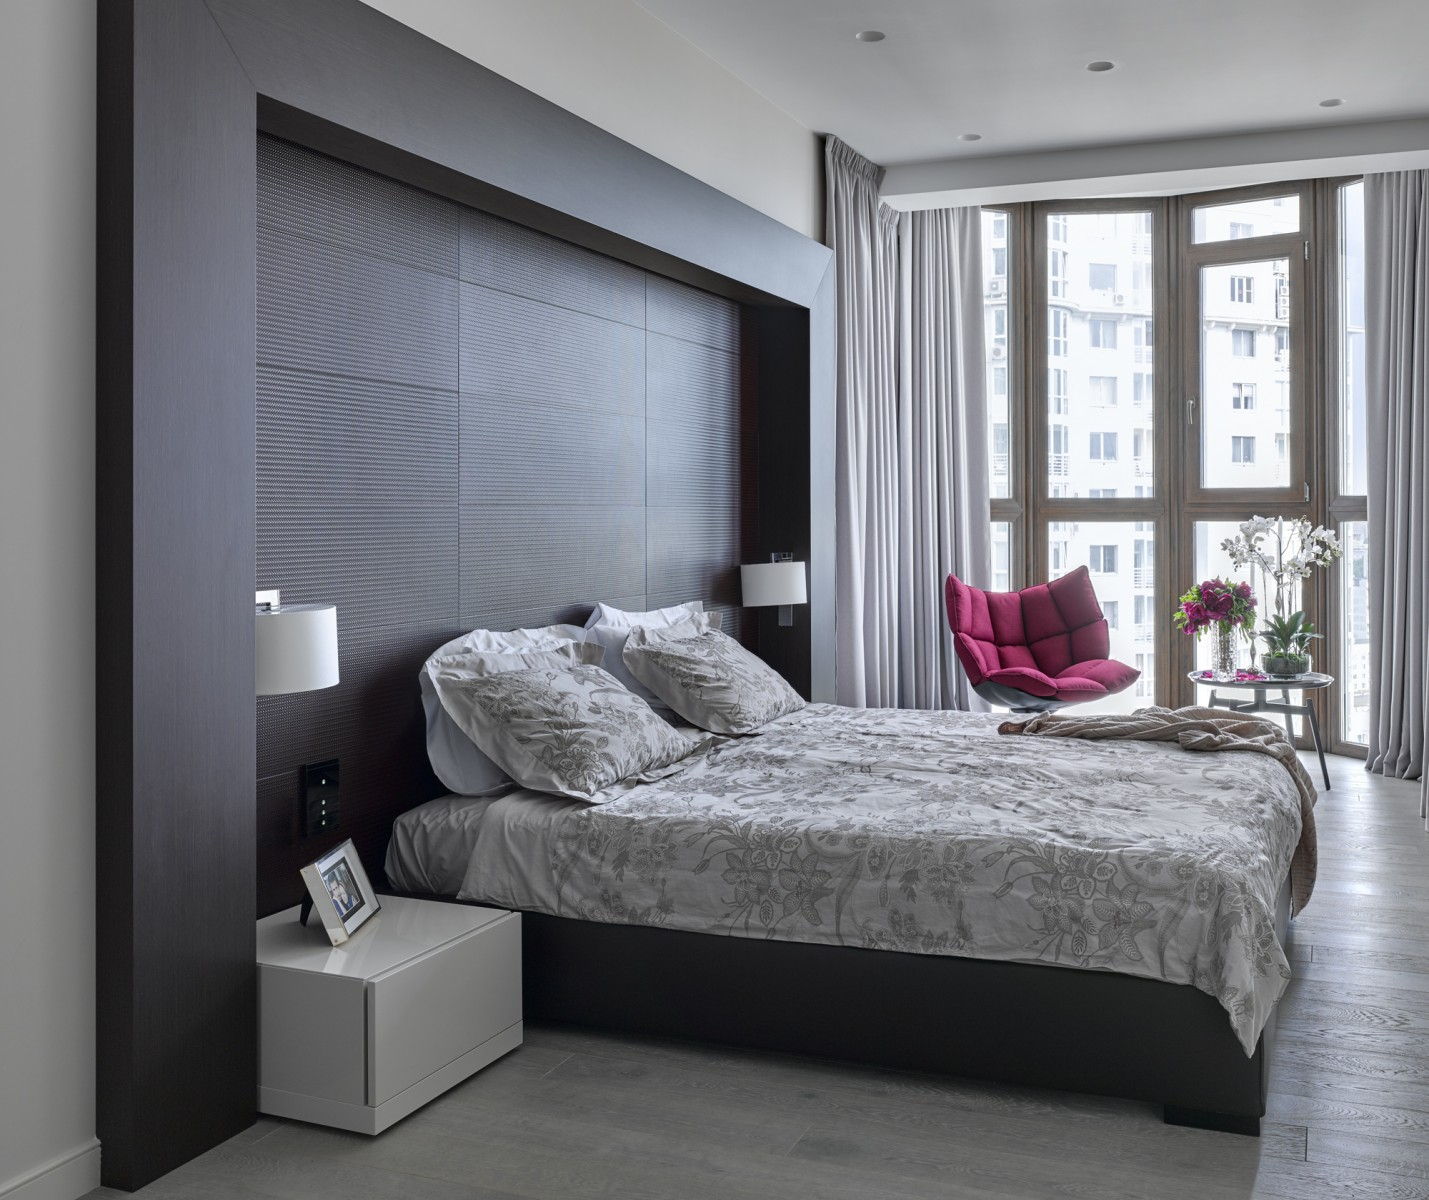 20 Small Bedroom Ideas That Will Leave You Speechless Architecture